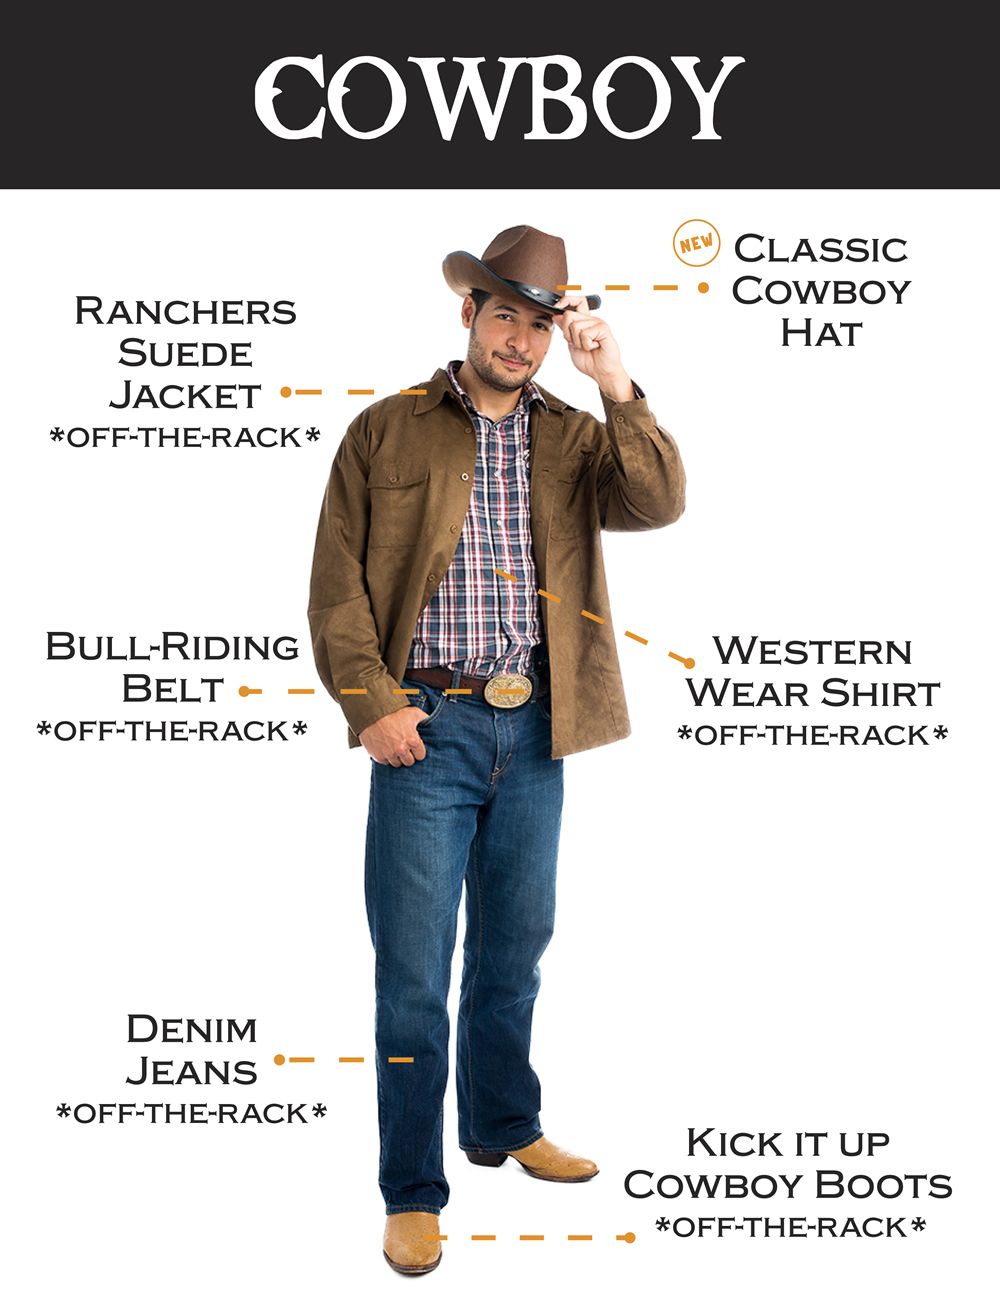 Cowboy: classic cowboy hat, ranchers suede jacket, western wear shirt